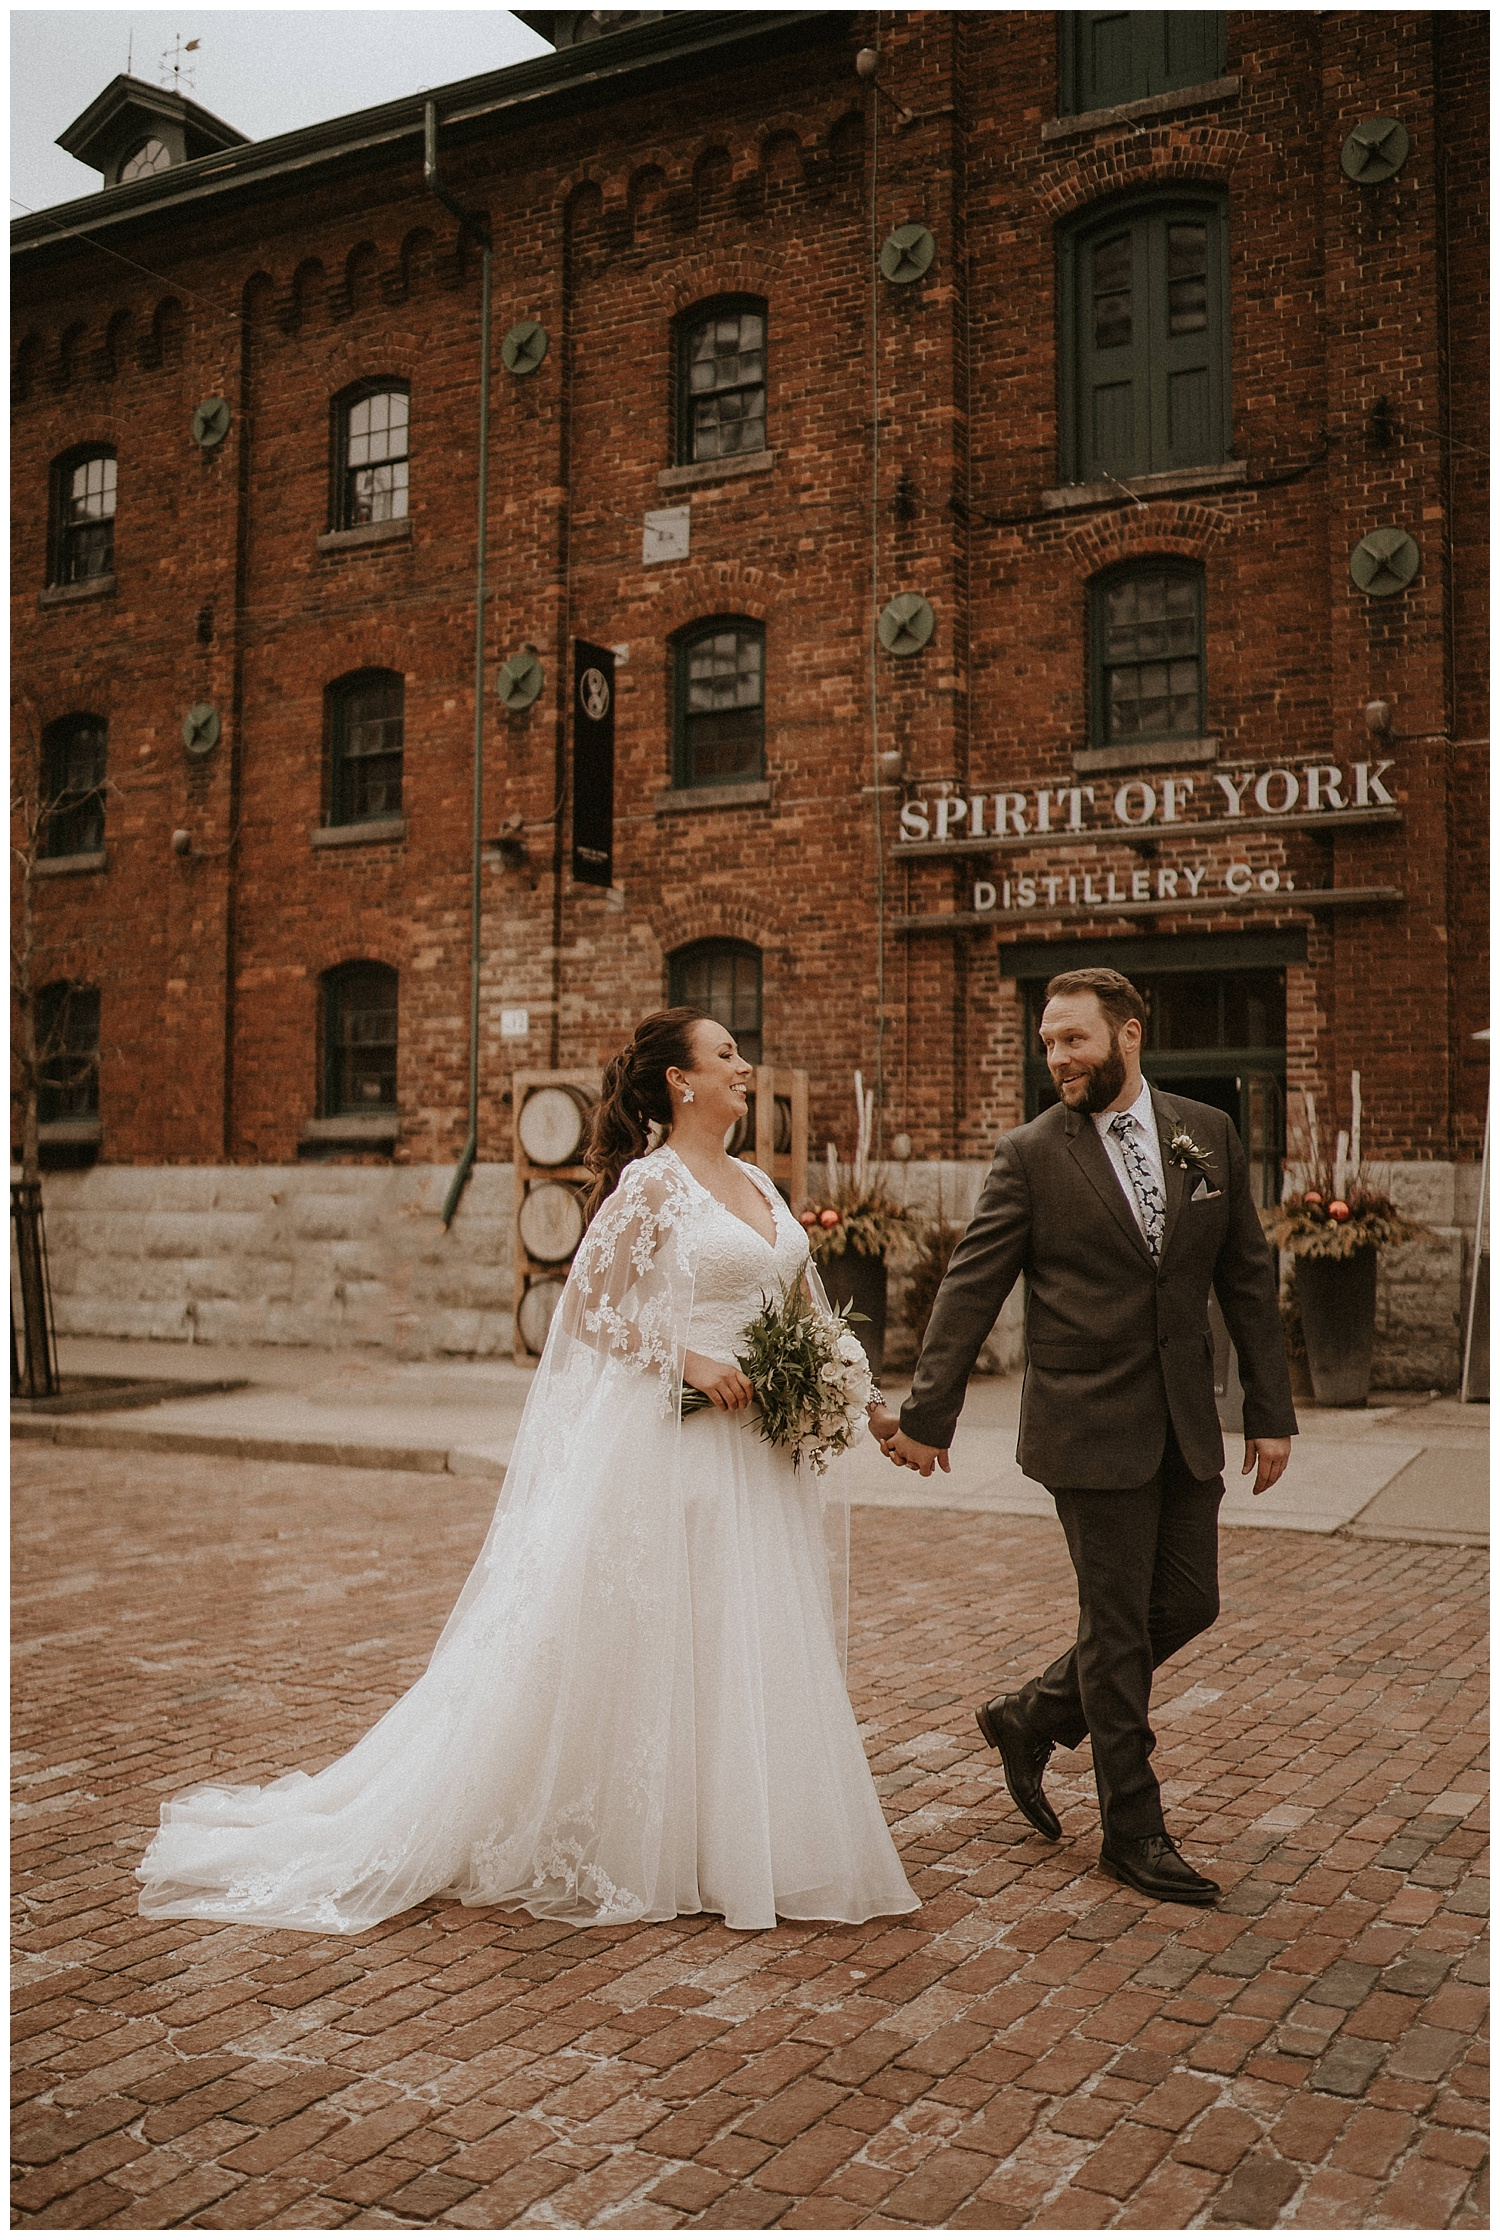 Katie Marie Photography | Archeo Wedding Arta Gallery Wedding | Distillery District Wedding | Toronto Wedding Photographer | Hamilton Toronto Ontario Wedding Photographer |_0051.jpg